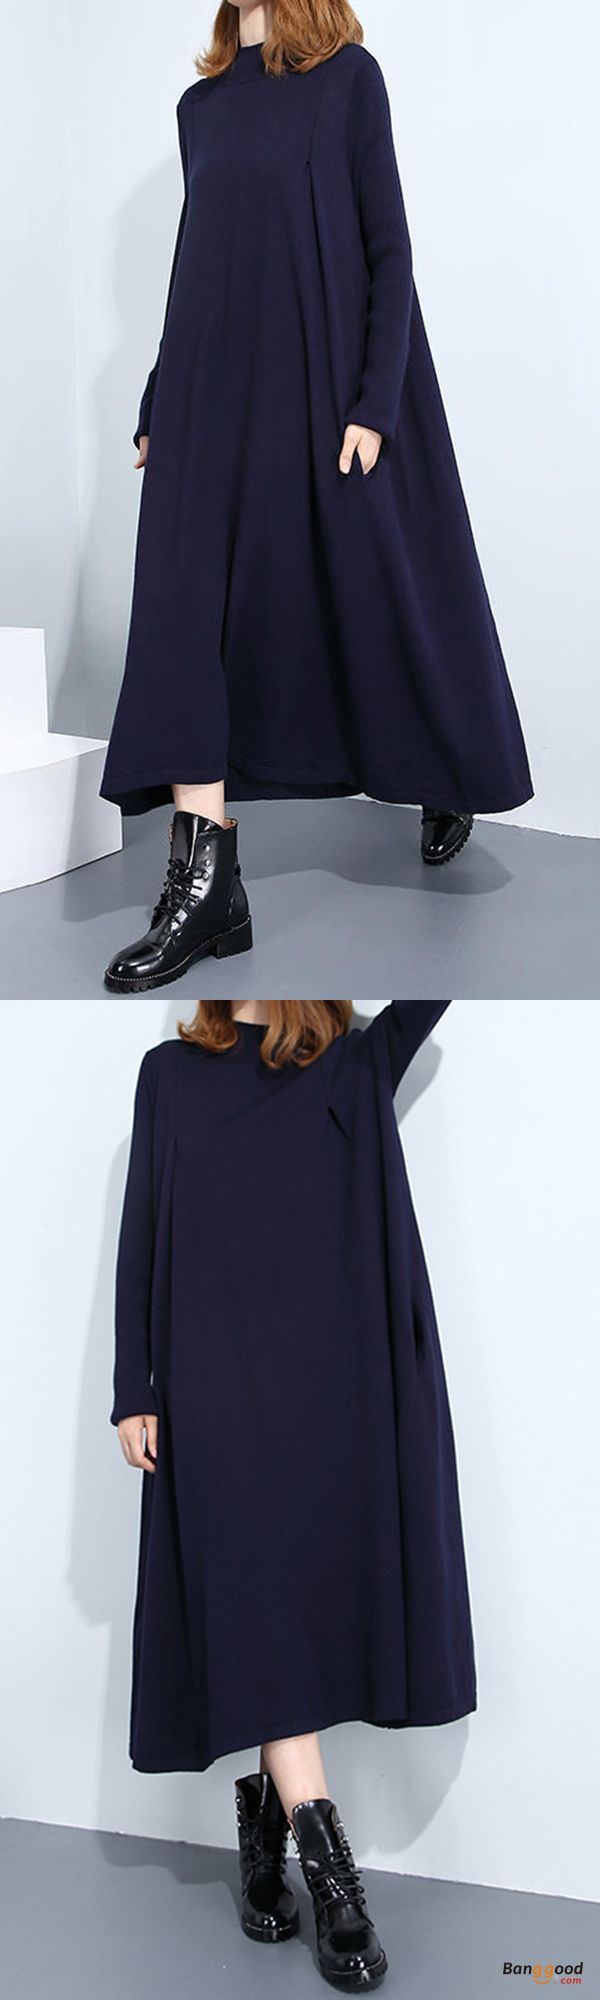 US$22.99 + Free shipping. Size: L~5XL. Color: Black, Navy, Red. Women's Dresses, Long Dresses, Fashion and Elegant. TRY it now!